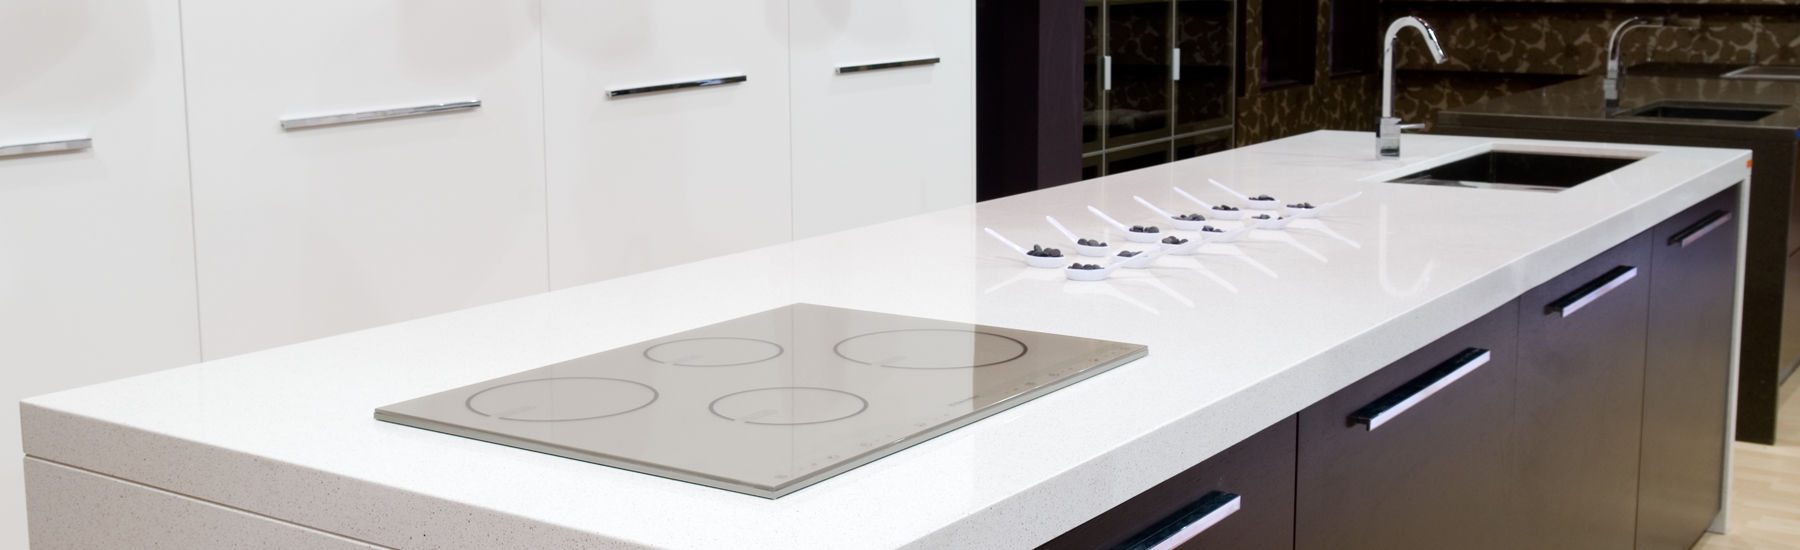 Quartz Composite Countertop / Kitchen SNOW COMPAC The Surfaces Company ...